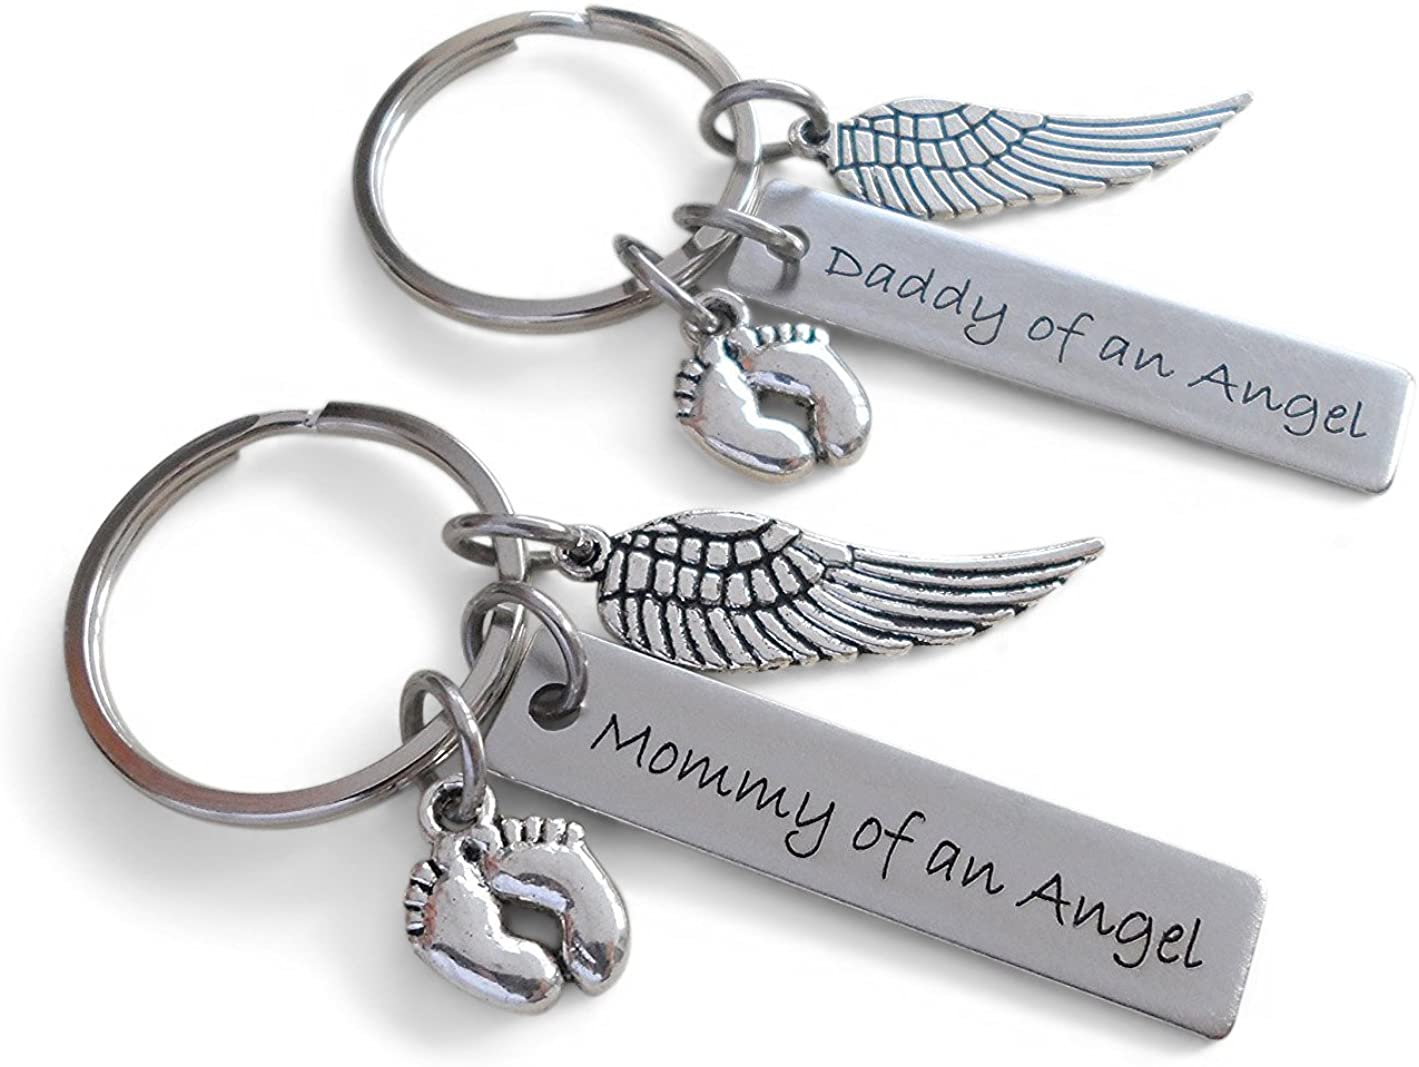 Set of 2 Keychains, Daddy of an Angel & Mommy of an Angel Engraved Baby Memorial Keychains, Wing & Baby Feet Charm